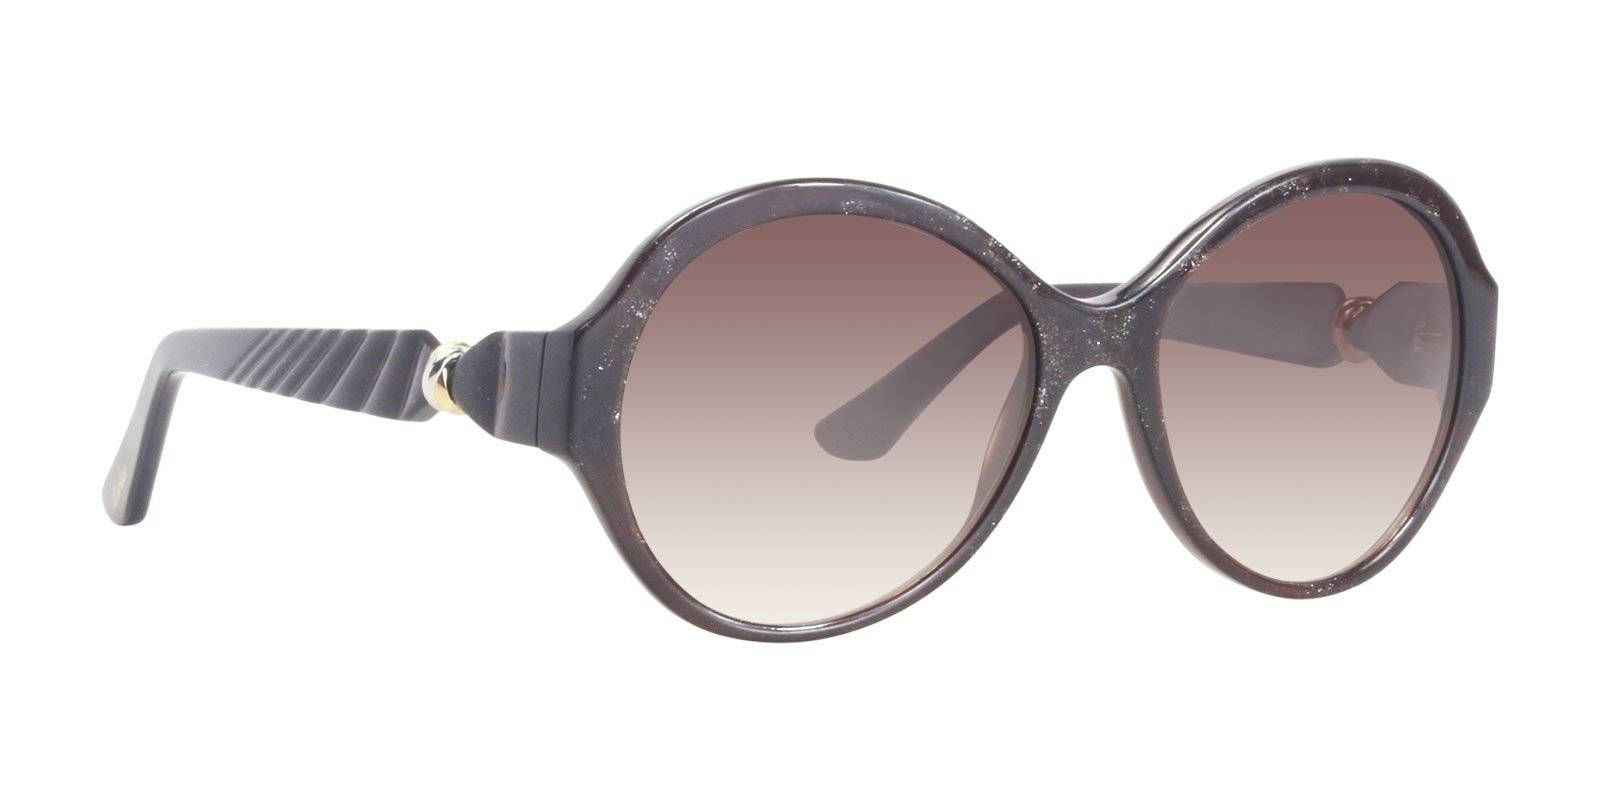 4a9485d38b2a This collection of sunglasses radiates with its precious assets. From the  side